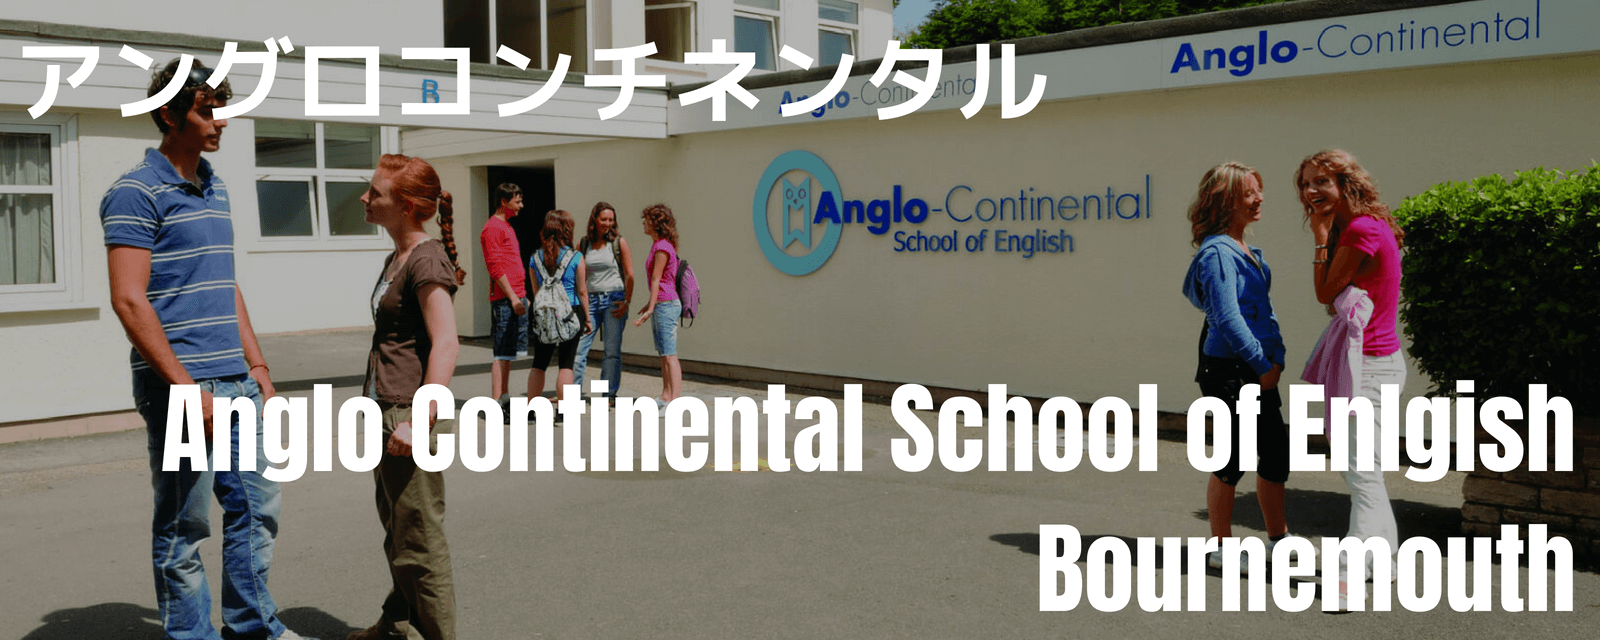 Anglo Continental School of Enlgish